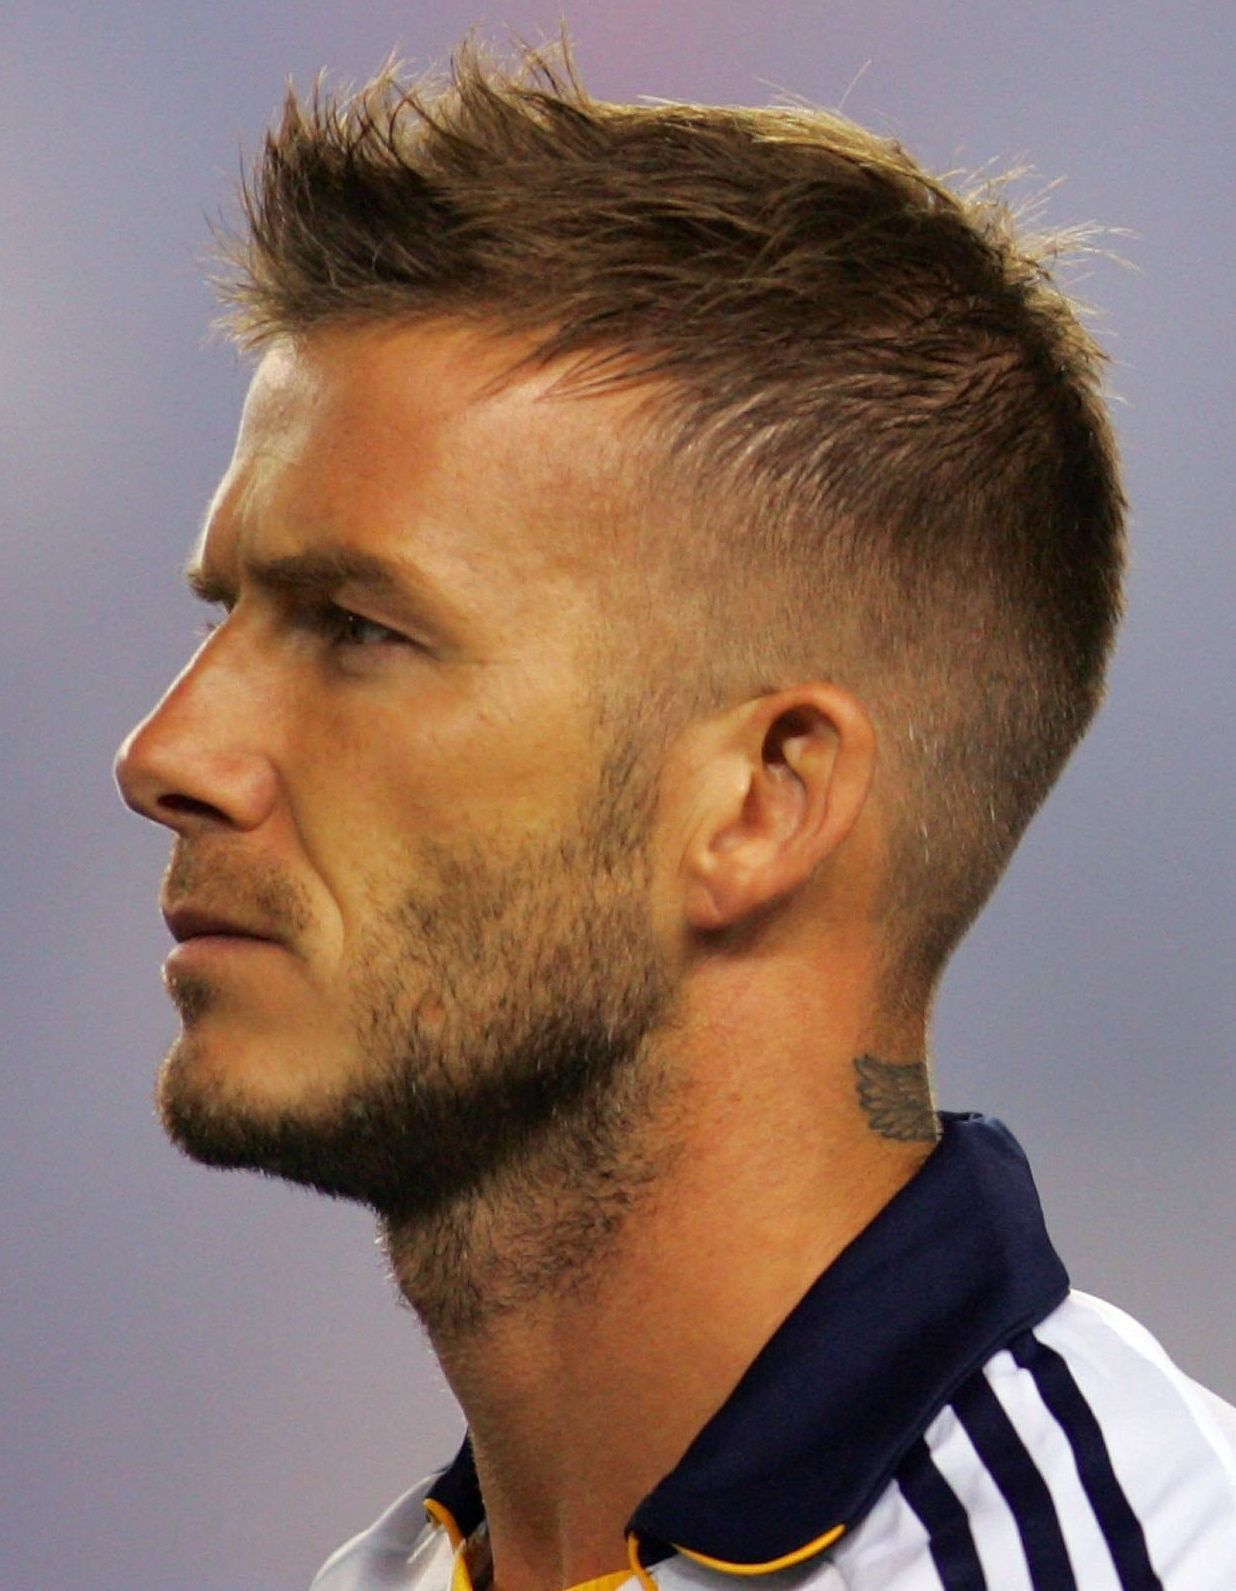 stylish and trendy mohawk hairstyls for cool guys | men hairstyles